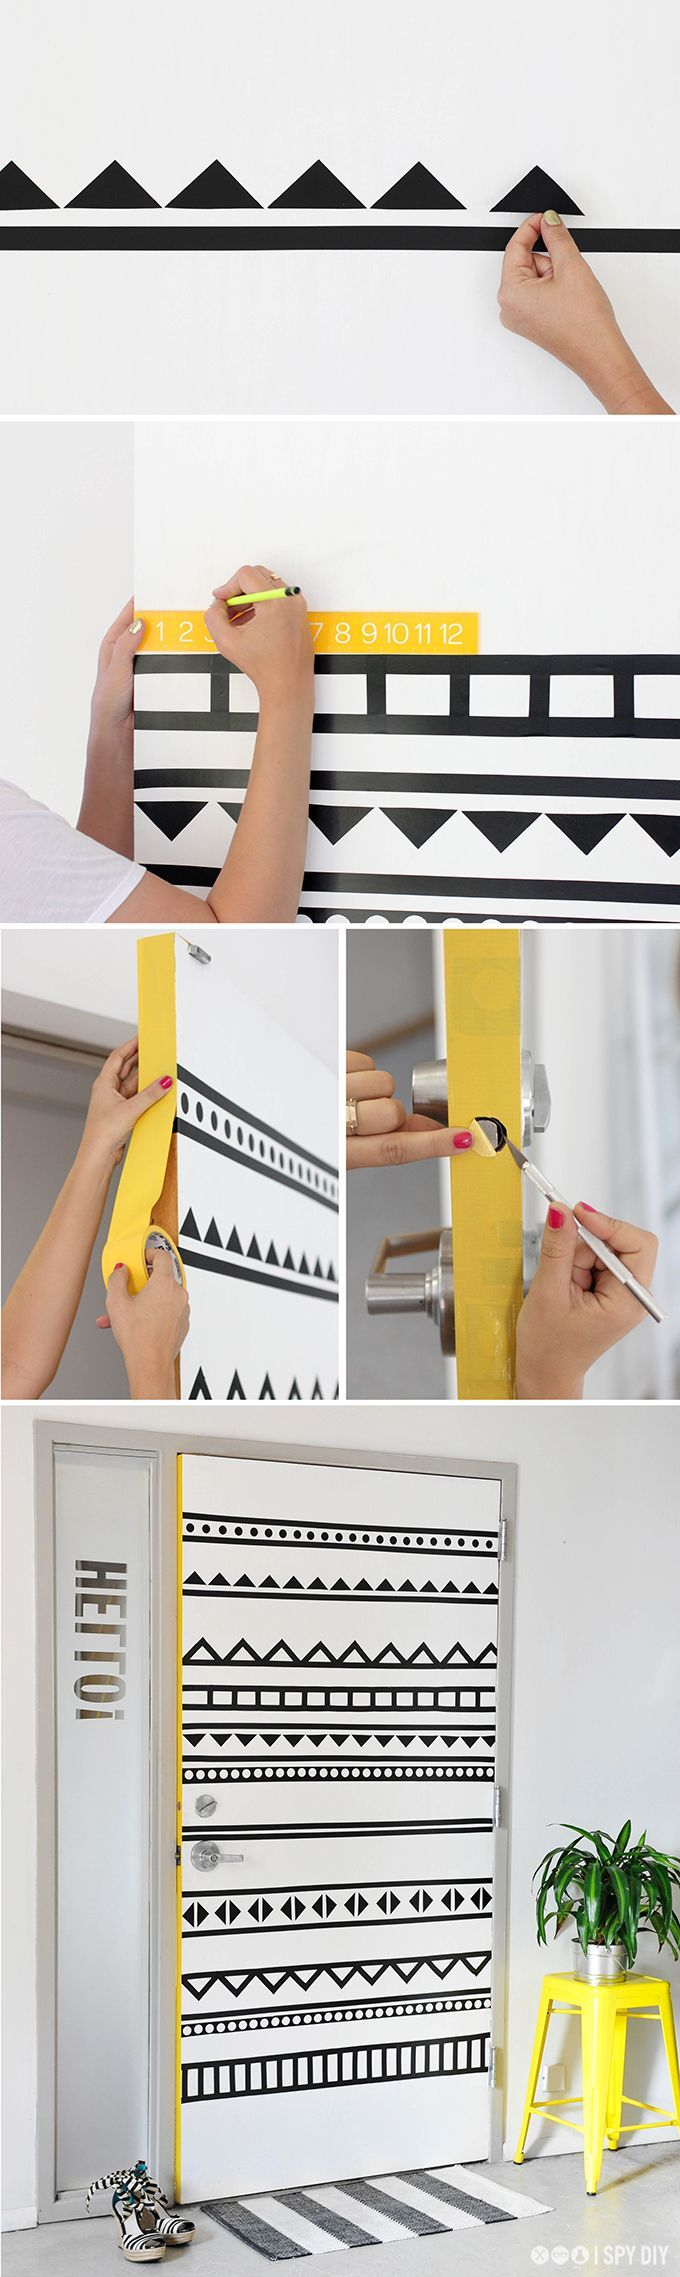 MY DIY InsideDoors Pinterest DIY ideas Spy and Doors